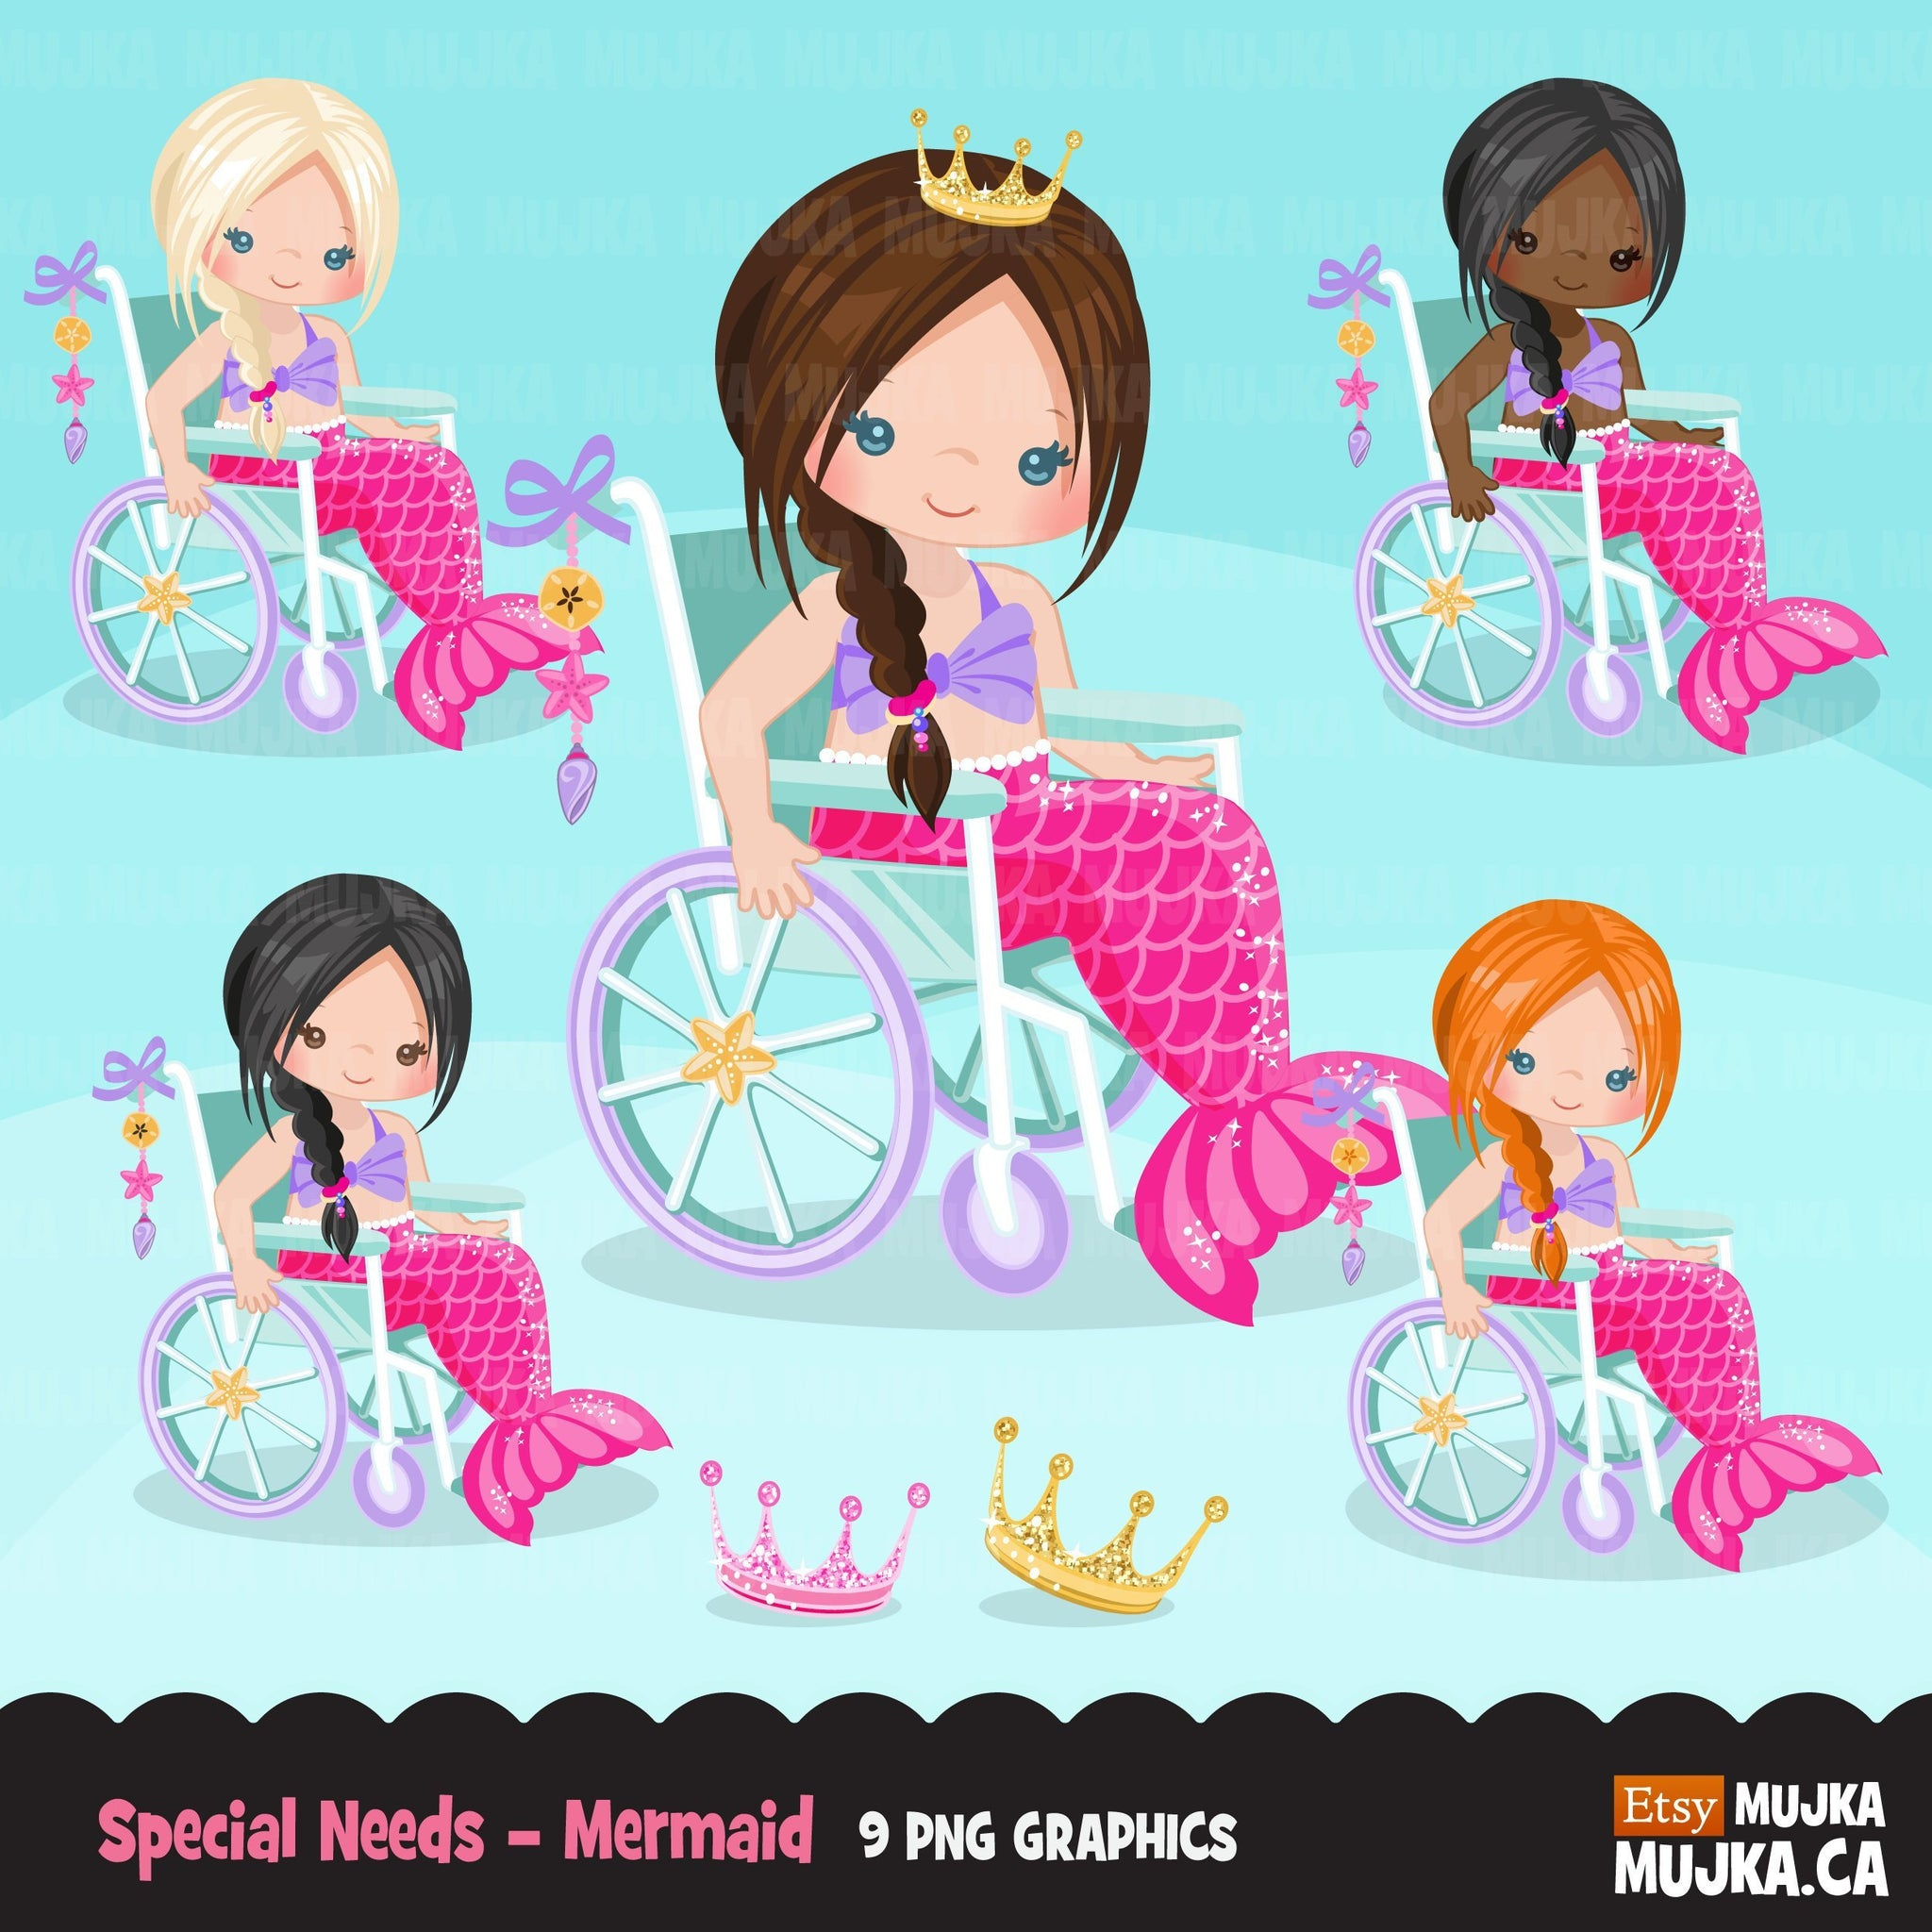 Special Needs Wheelchair clipart, girl with disability, mermaid princess